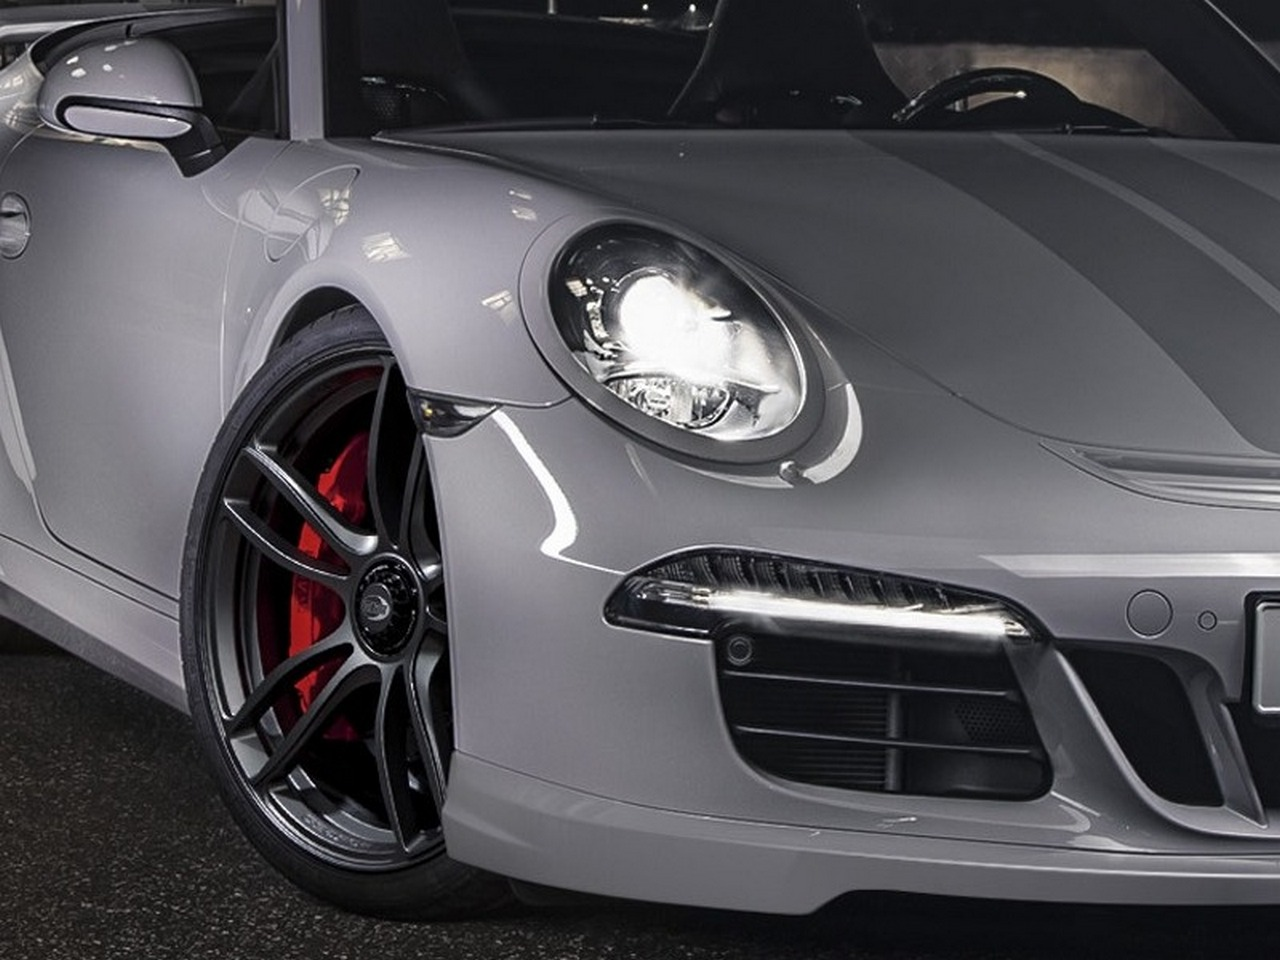 TECHART_forxcv_911_GTS_front